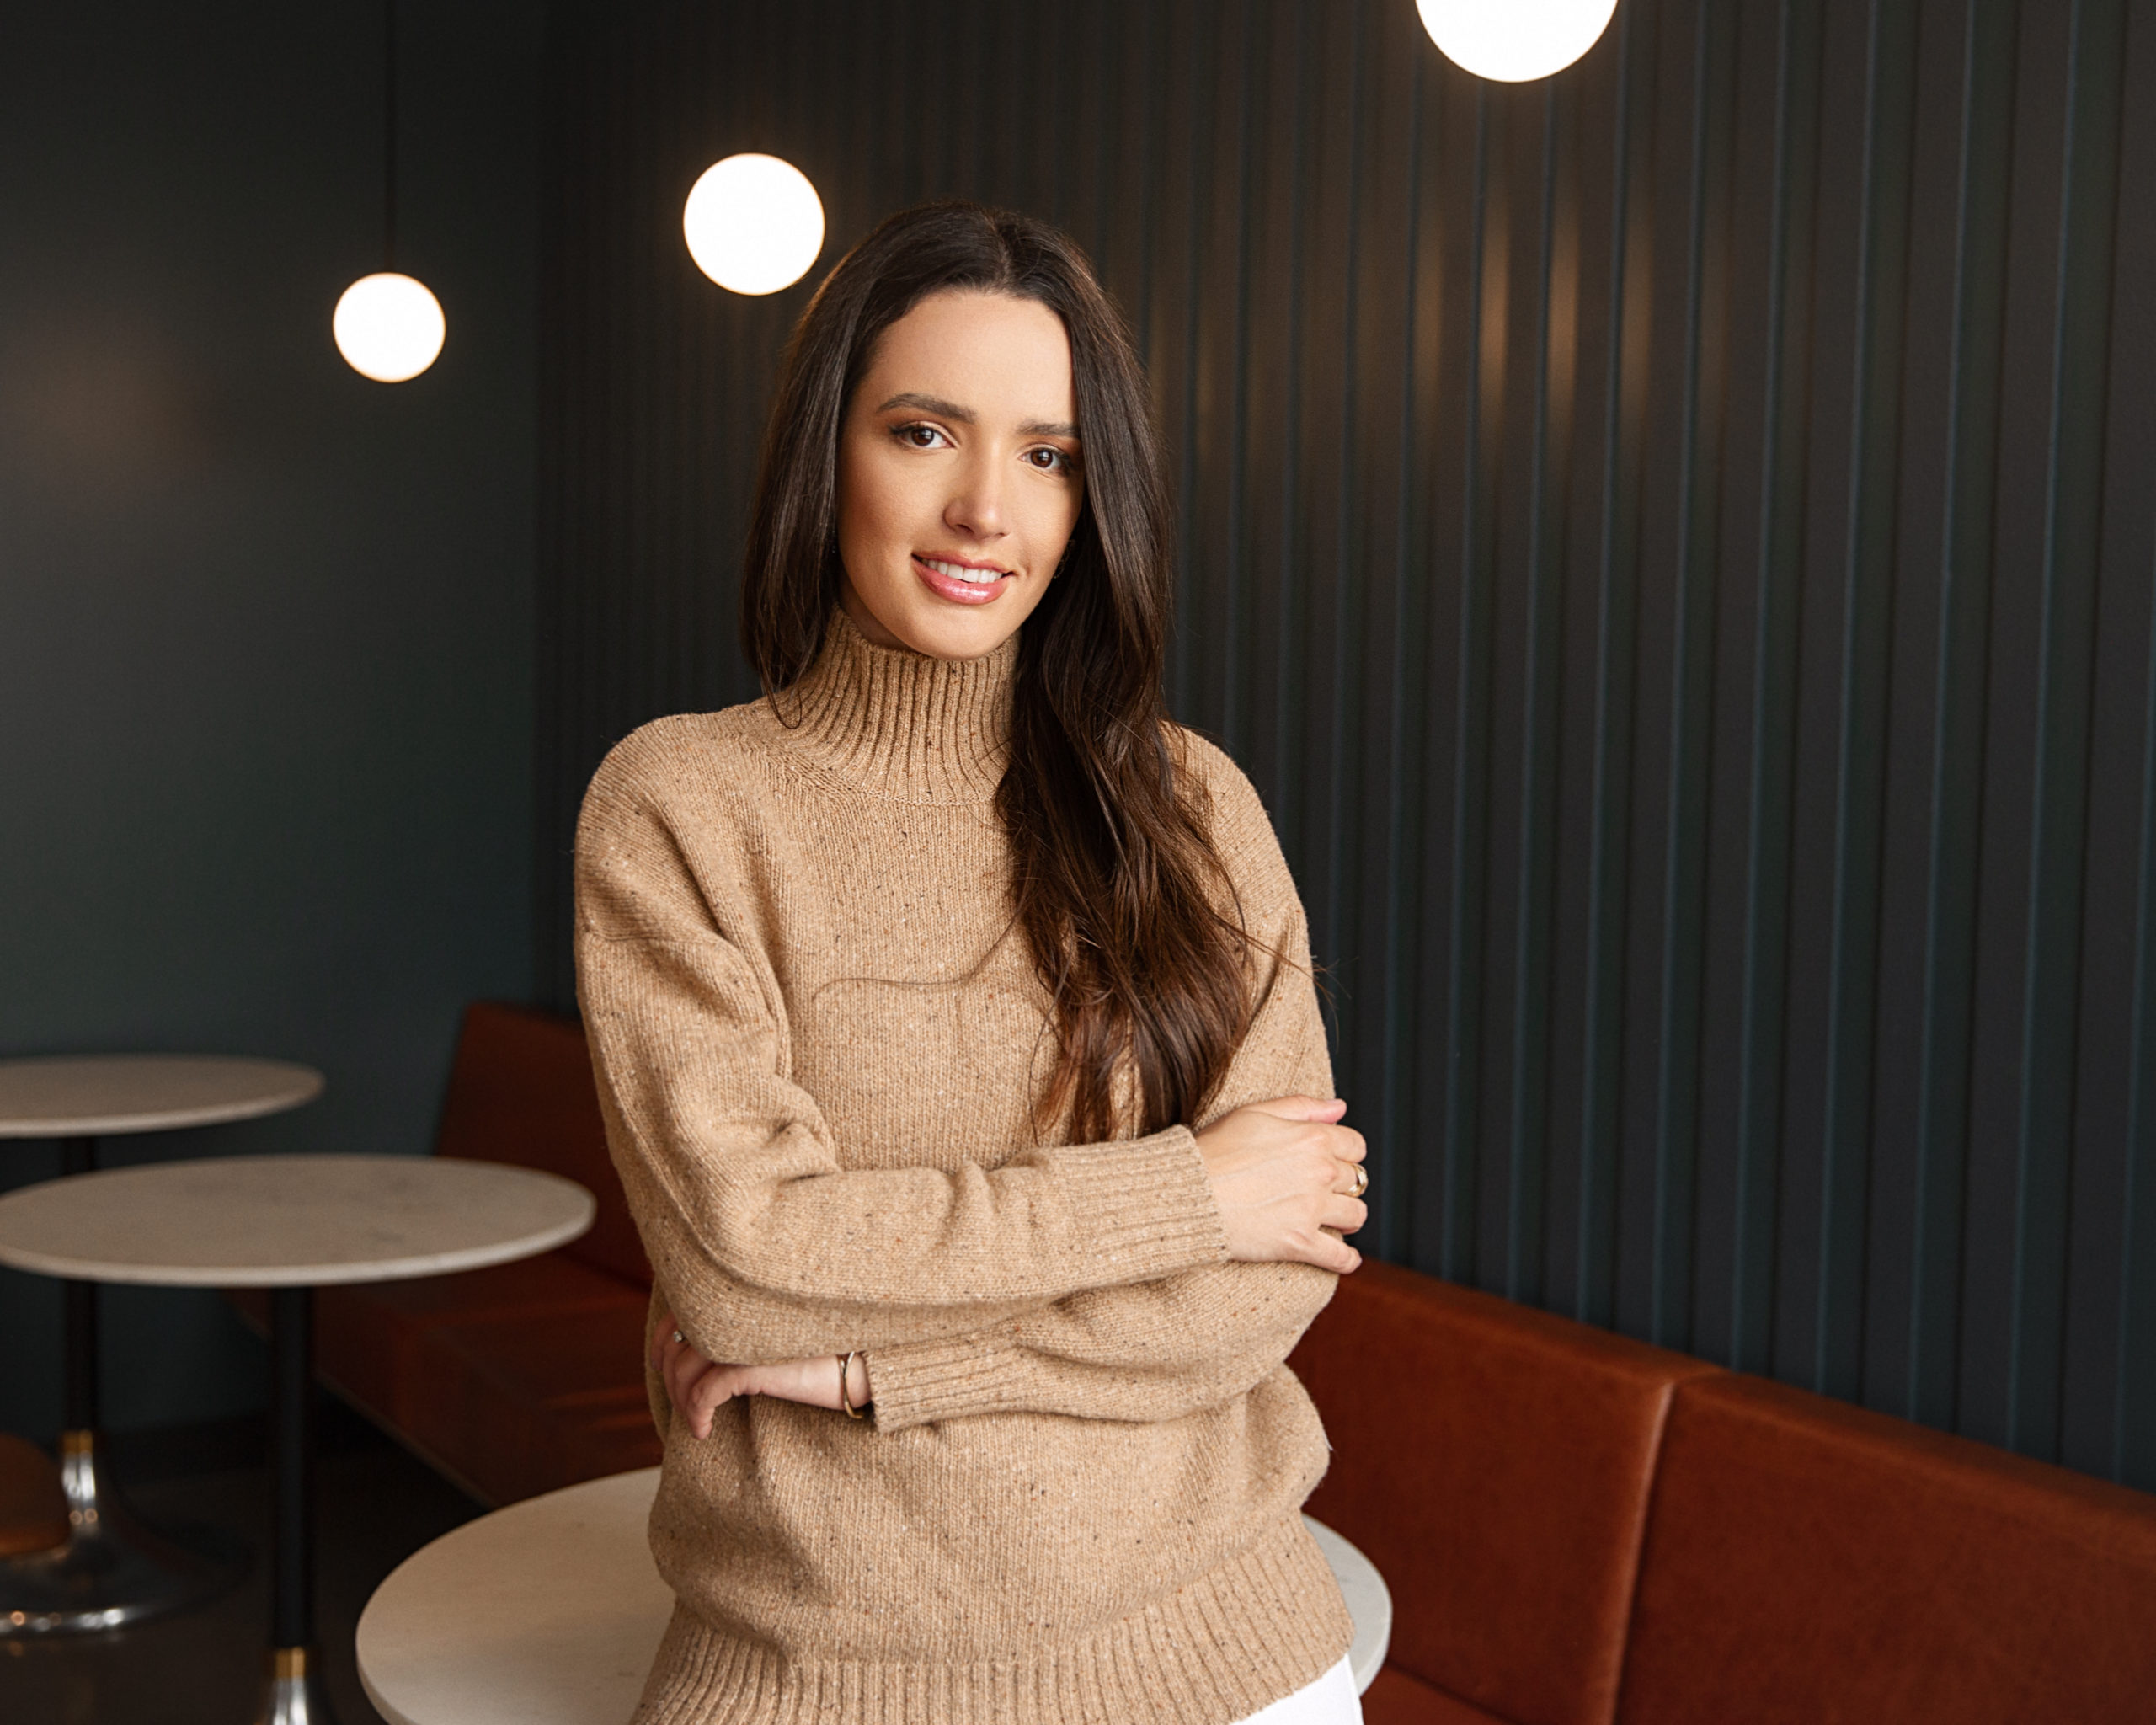 With the Help of LiDAR Technology, Pierina Merino Ushers In a New Generation of Social With FlickPlay